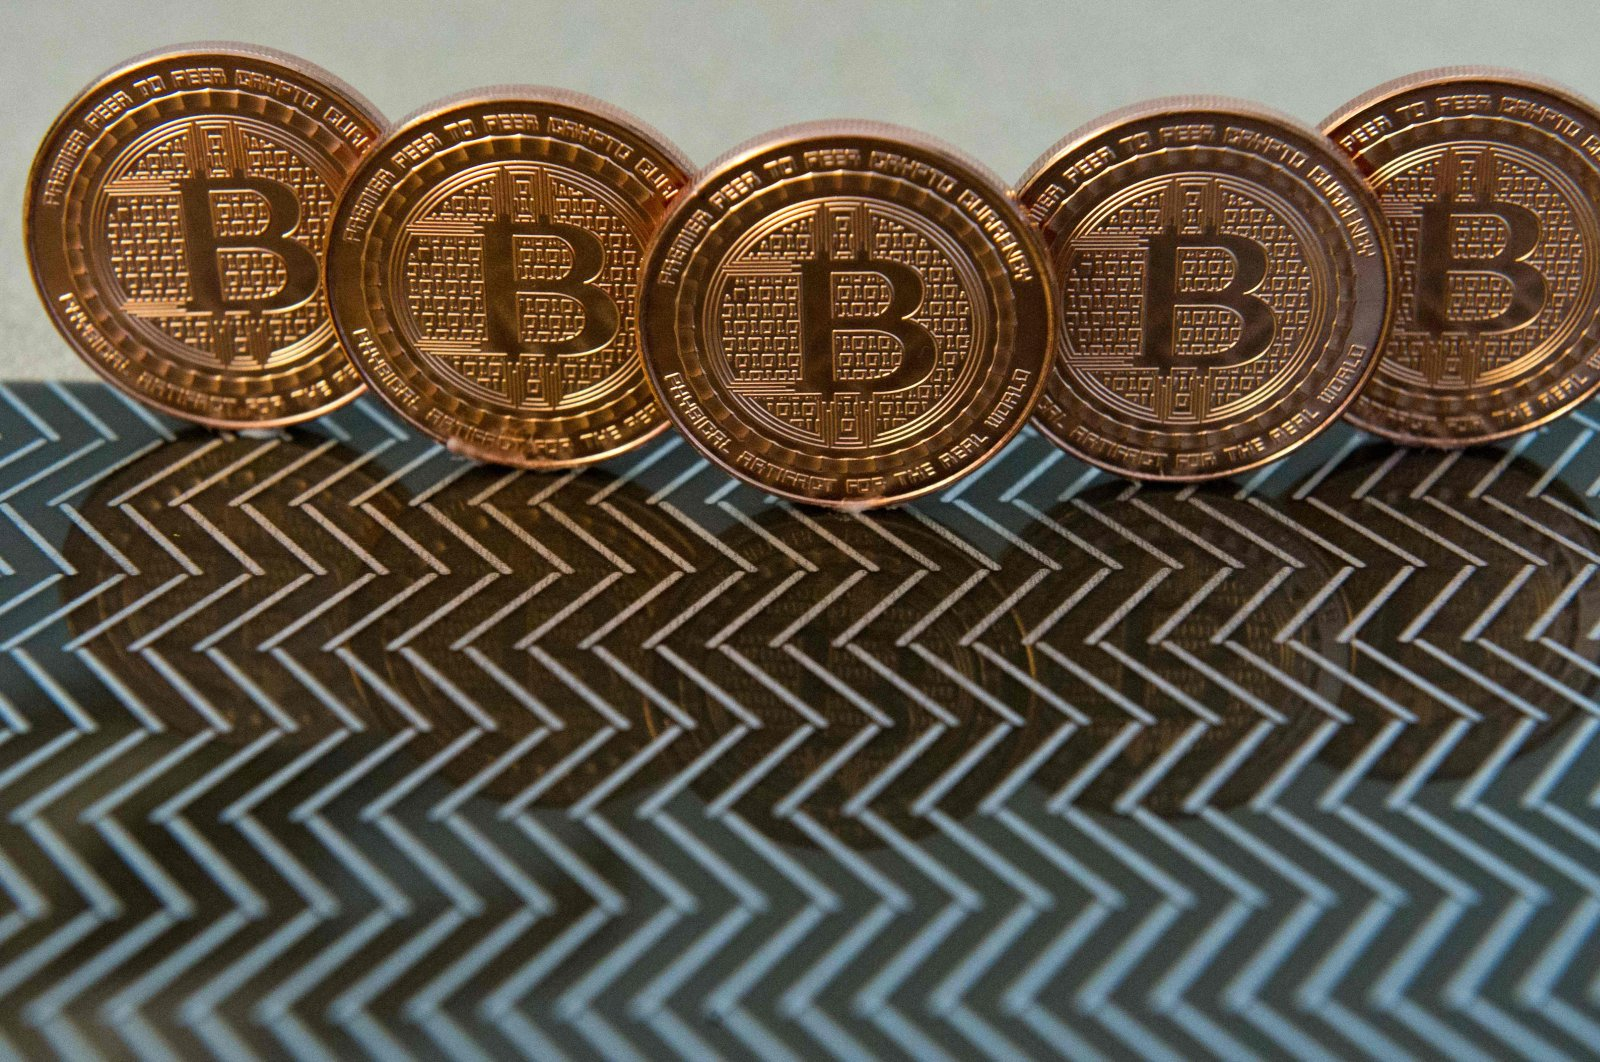 Bitcoin medals are seen in this file photo taken in Washington, D.C., U.S., June 17, 2014. (AFP Photo)